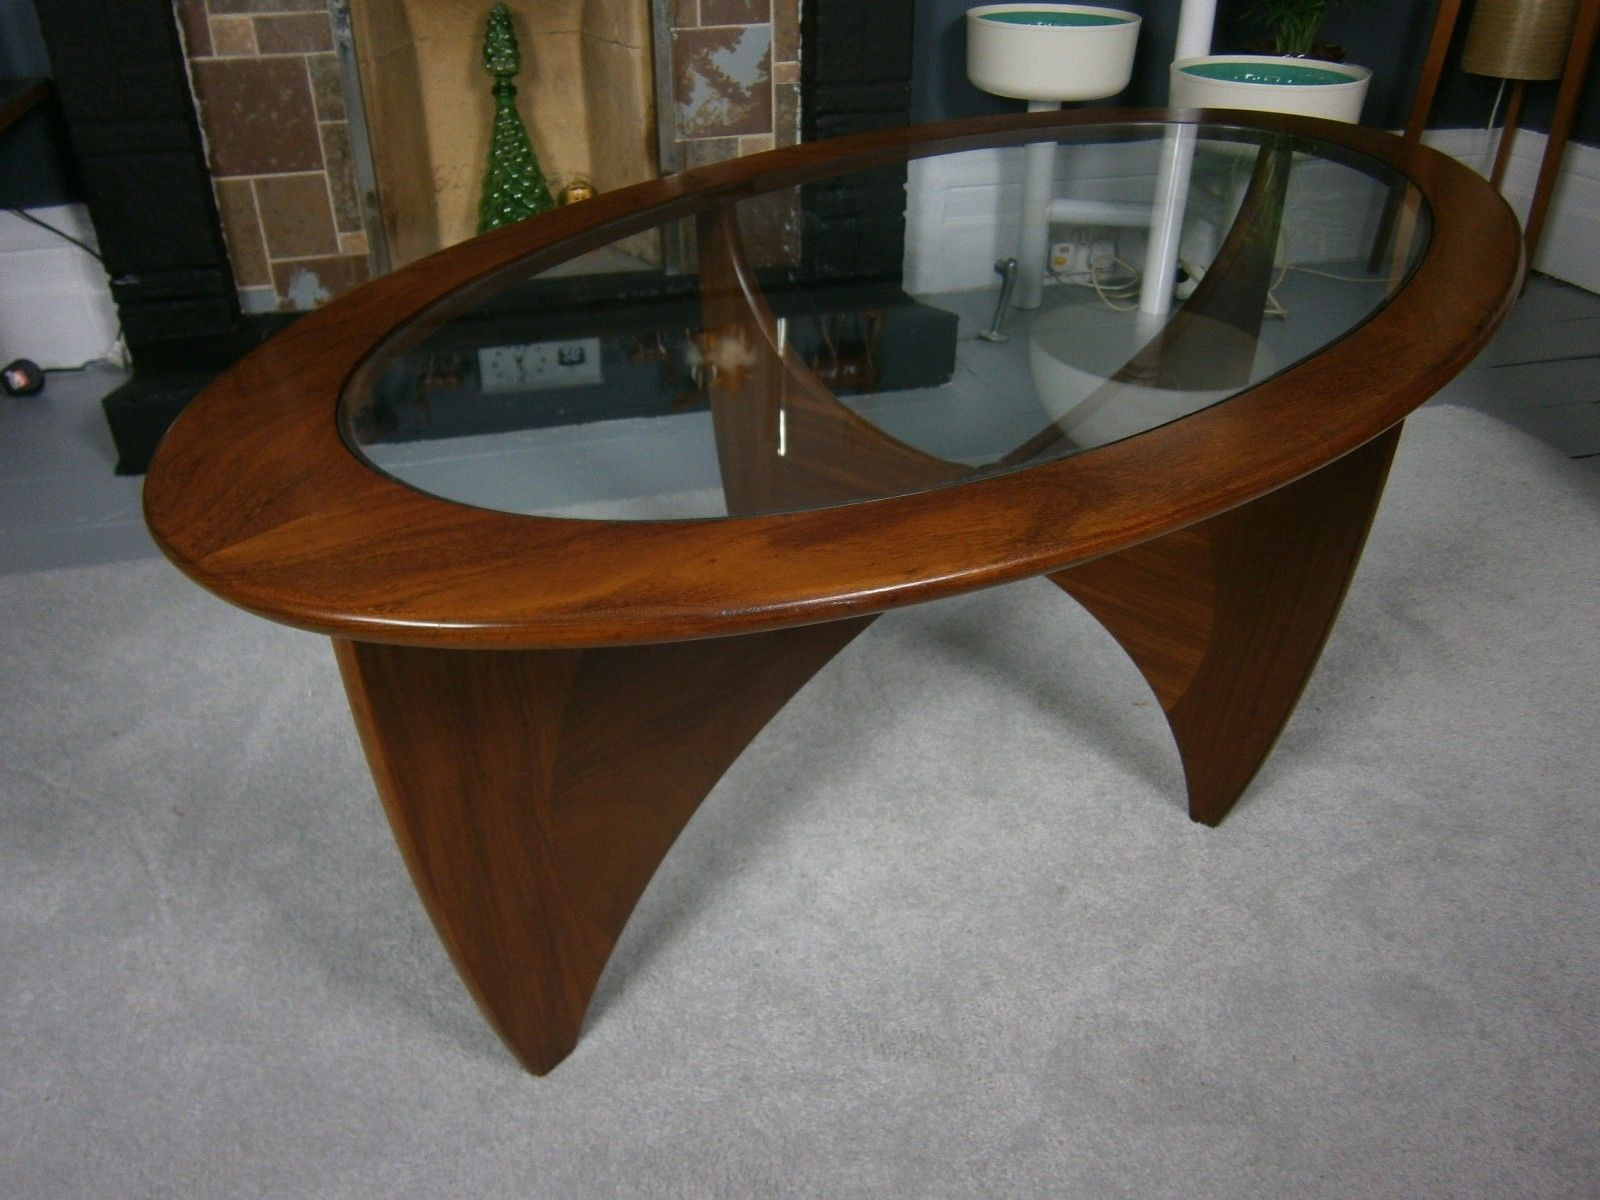 vintage retro mid century G Plan astro oval teak coffee table